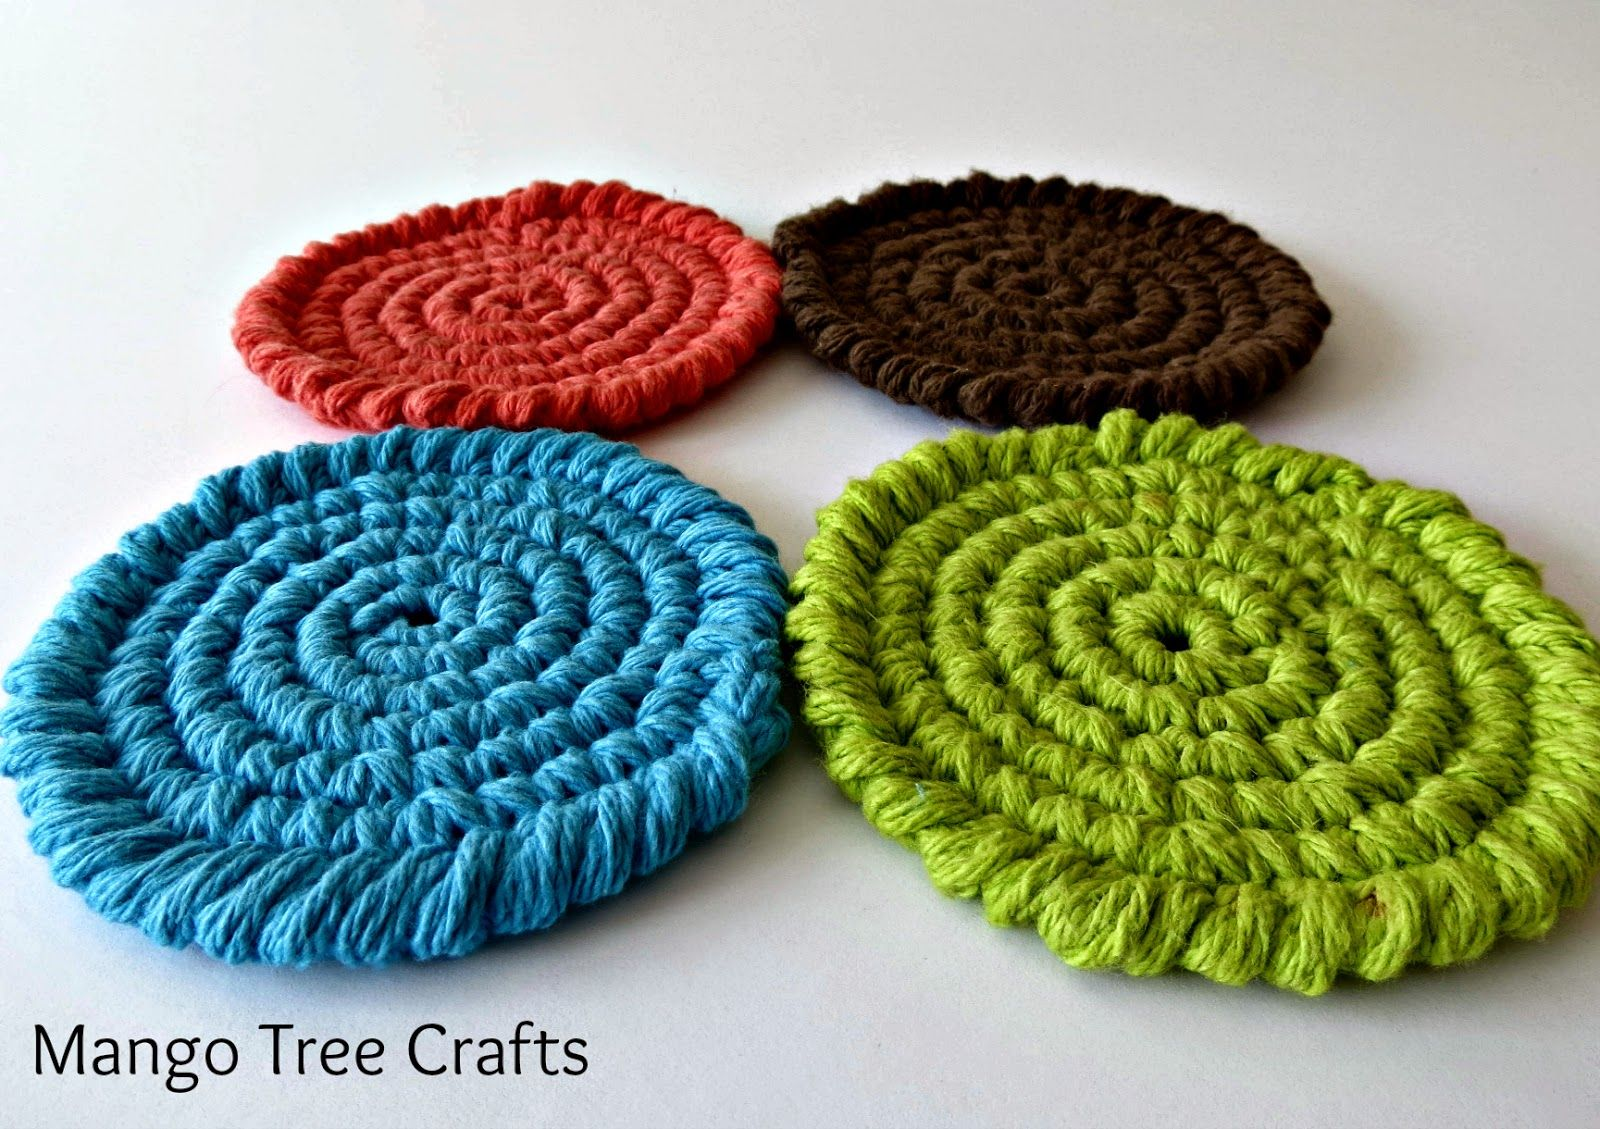 Crochet Coasters Free Pattern | Crafts | Pinterest | Ganchillo y ...